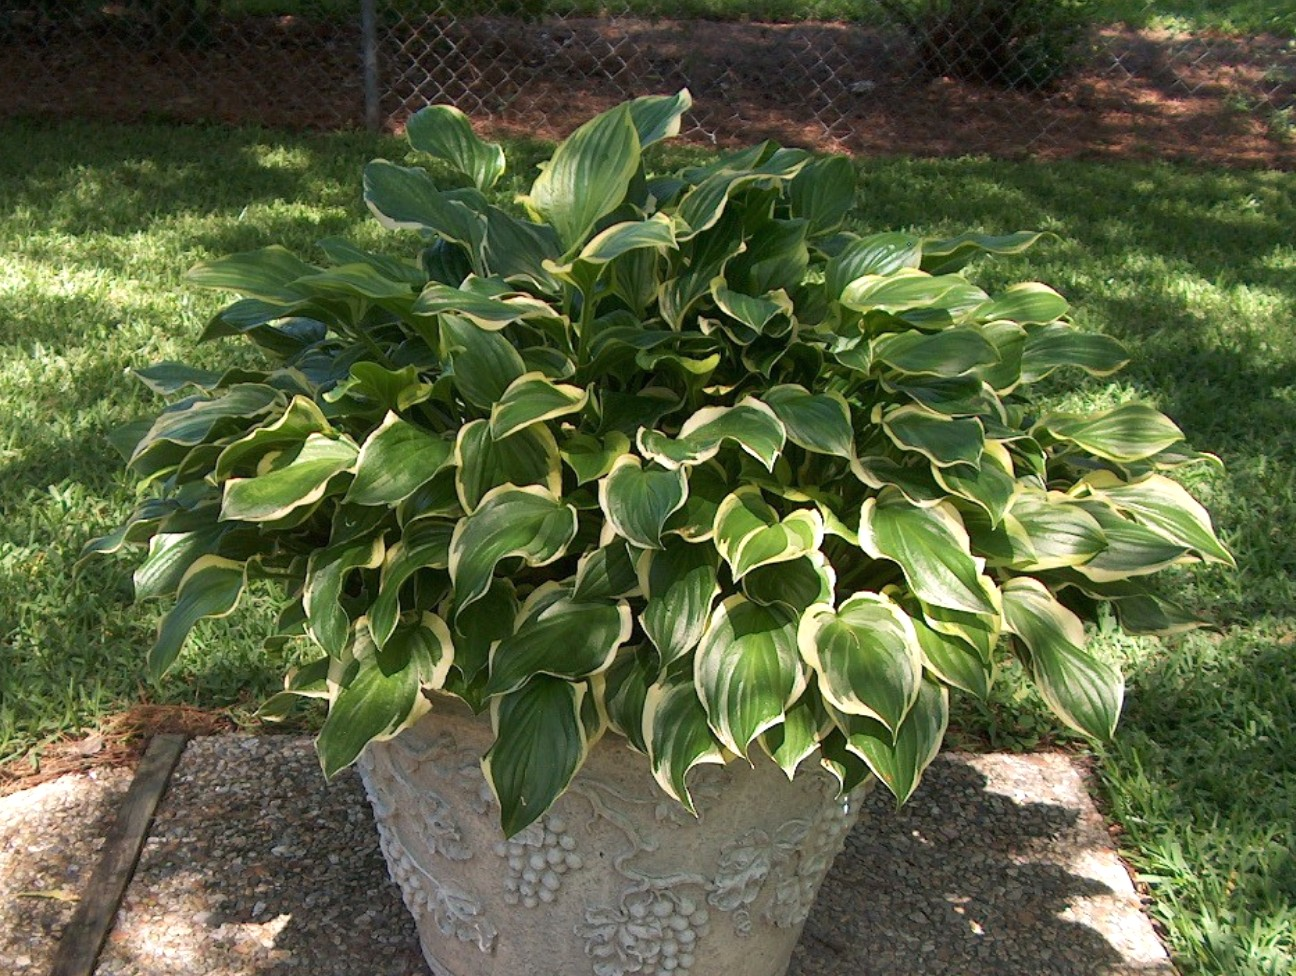 Hosta 'So Sweet' / Hosta 'So Sweet'